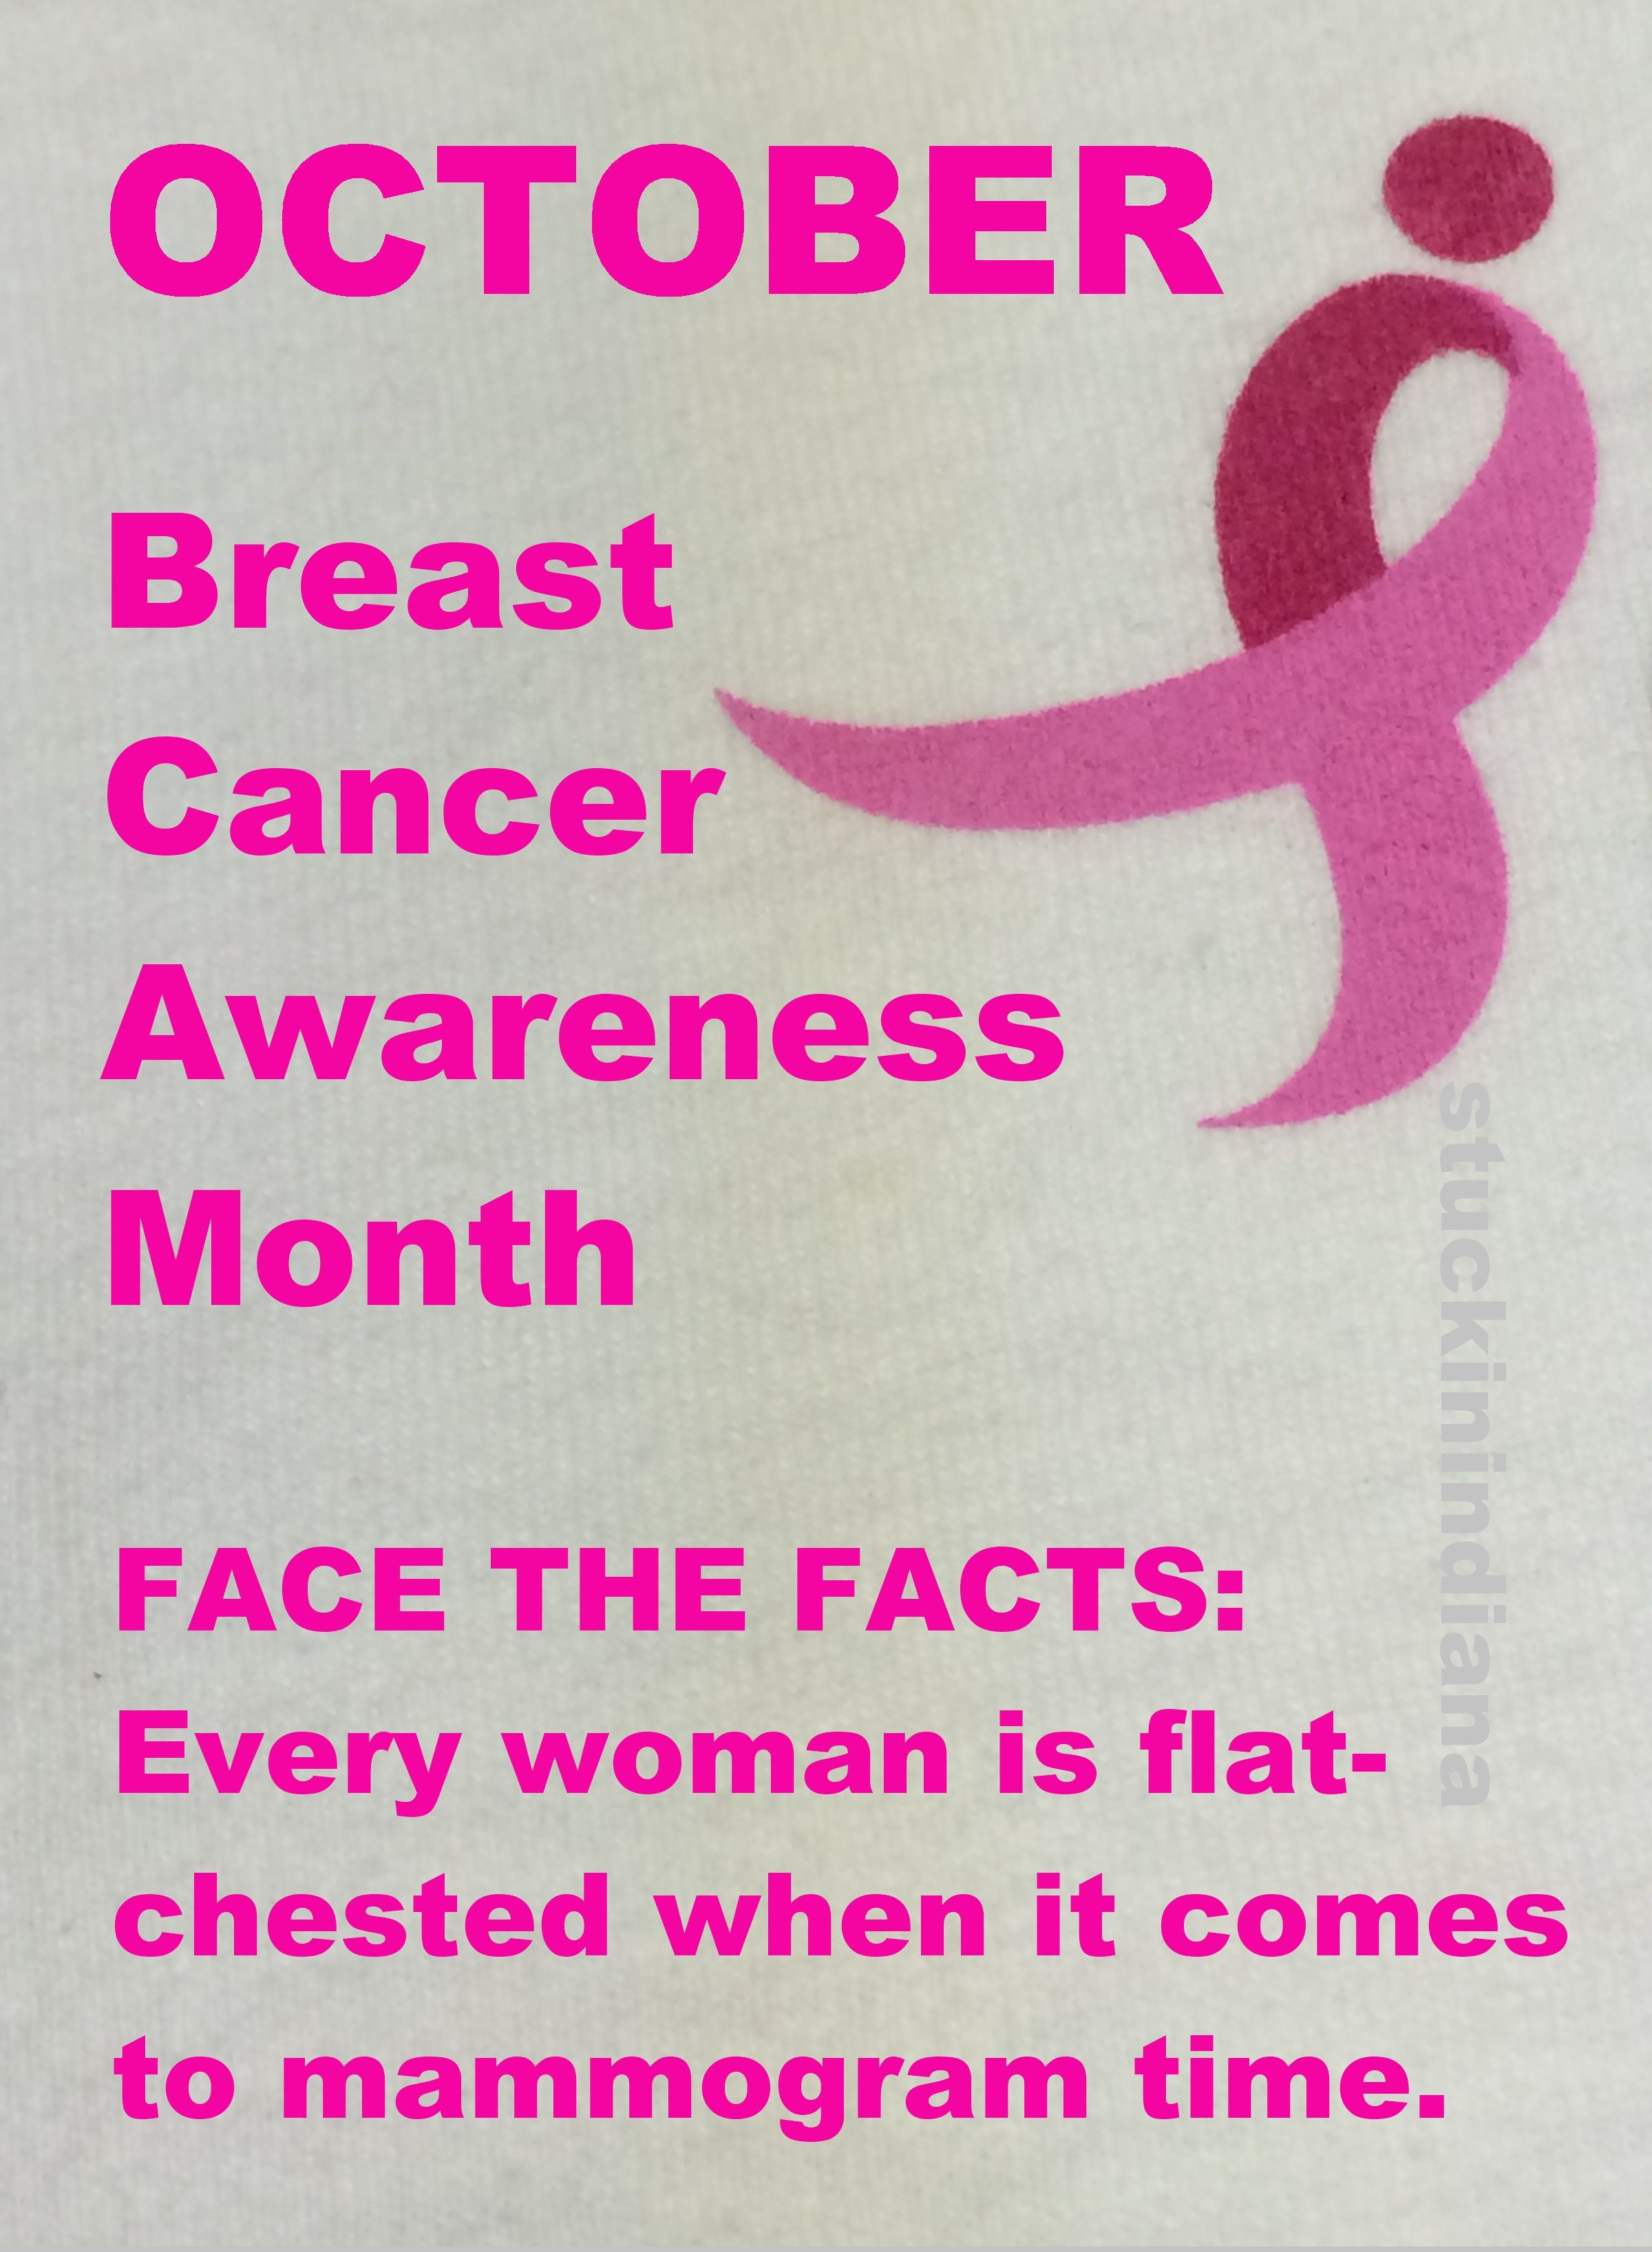 October is breast cancer awareness month and face the facts october is breast cancer awareness month and face the facts every woman buycottarizona